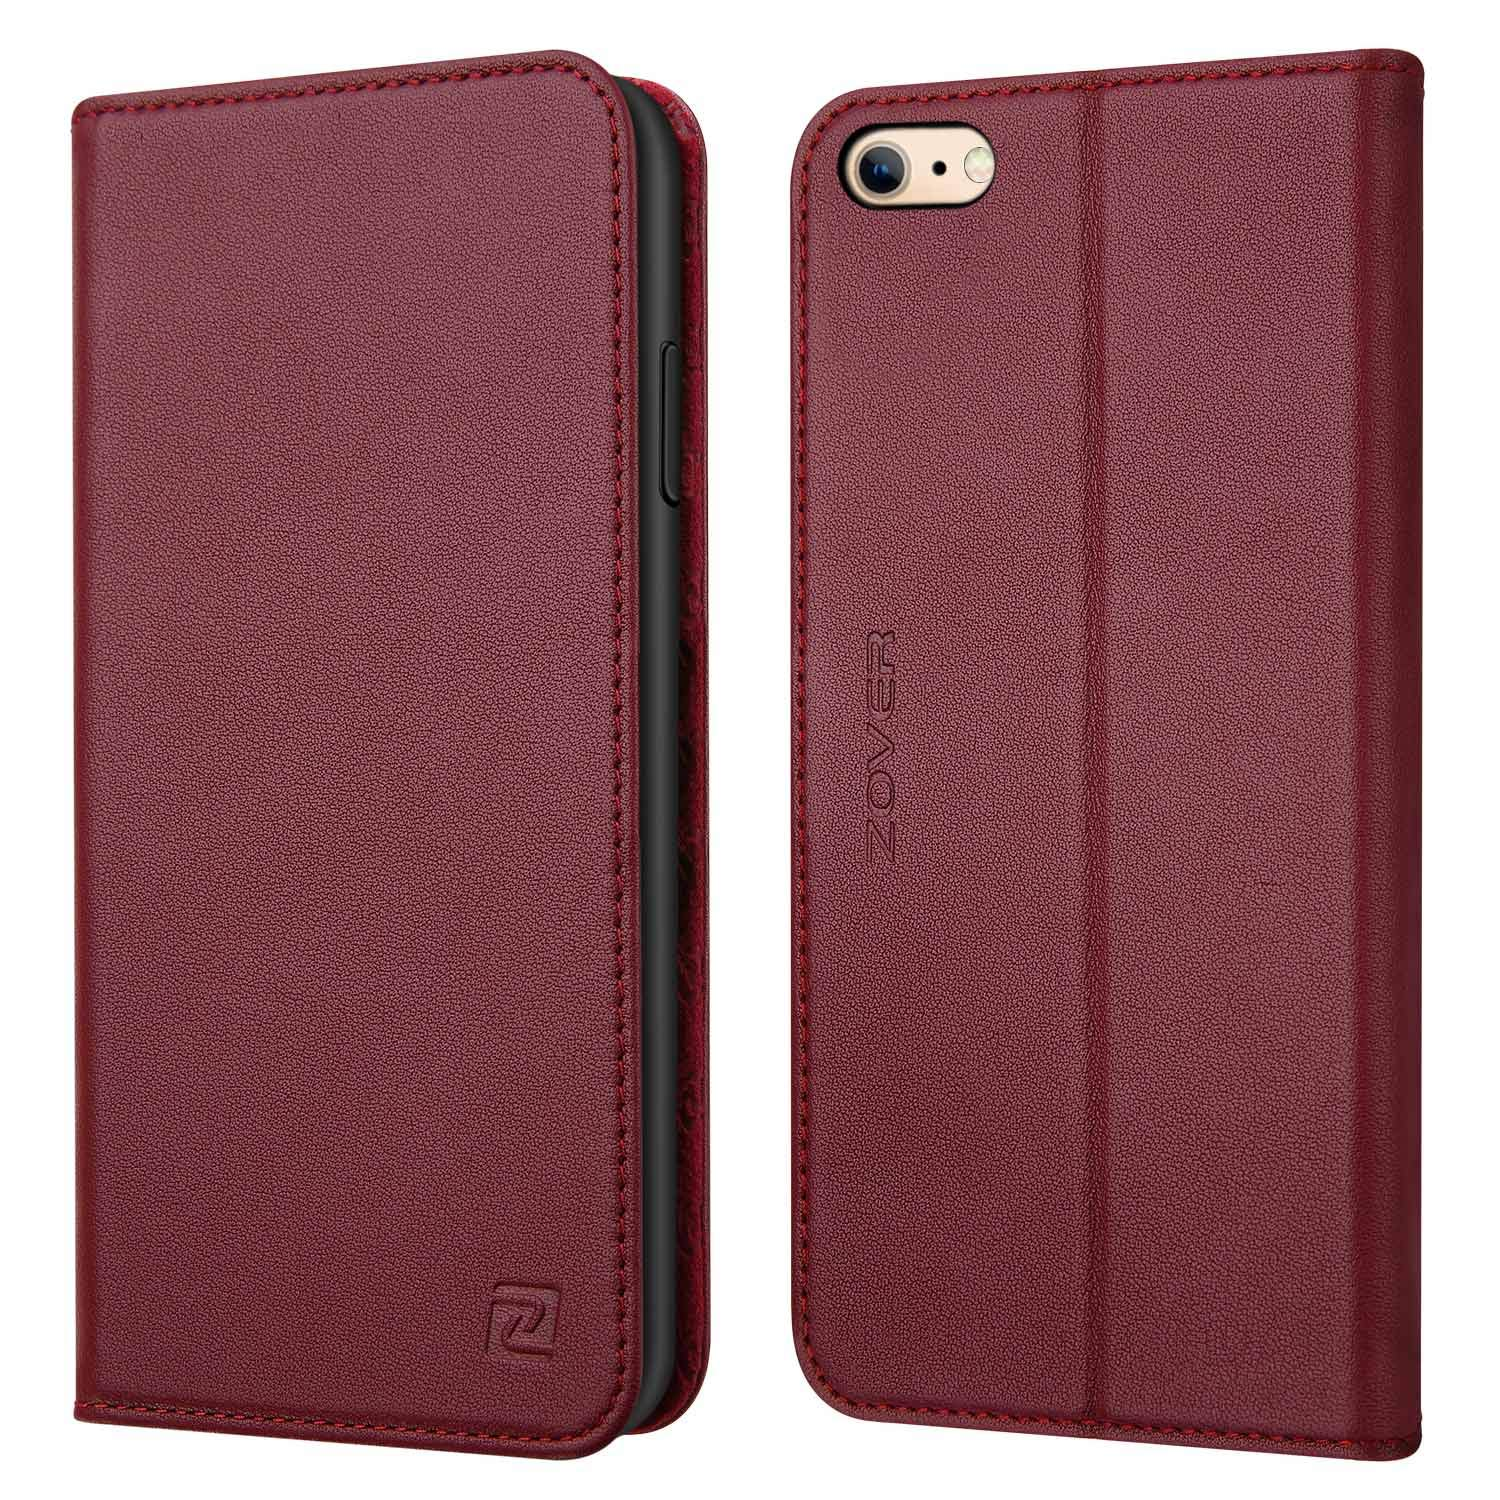 Zover iPhone 6S Plus Case iPhone 6 Plus case Genuine Leather Case Wallet Cover with Kickstand Feature Card Slots & ID Holder and Magnetic Closure for iPhone 6 Plus iPhone 6S Plus Wine Red